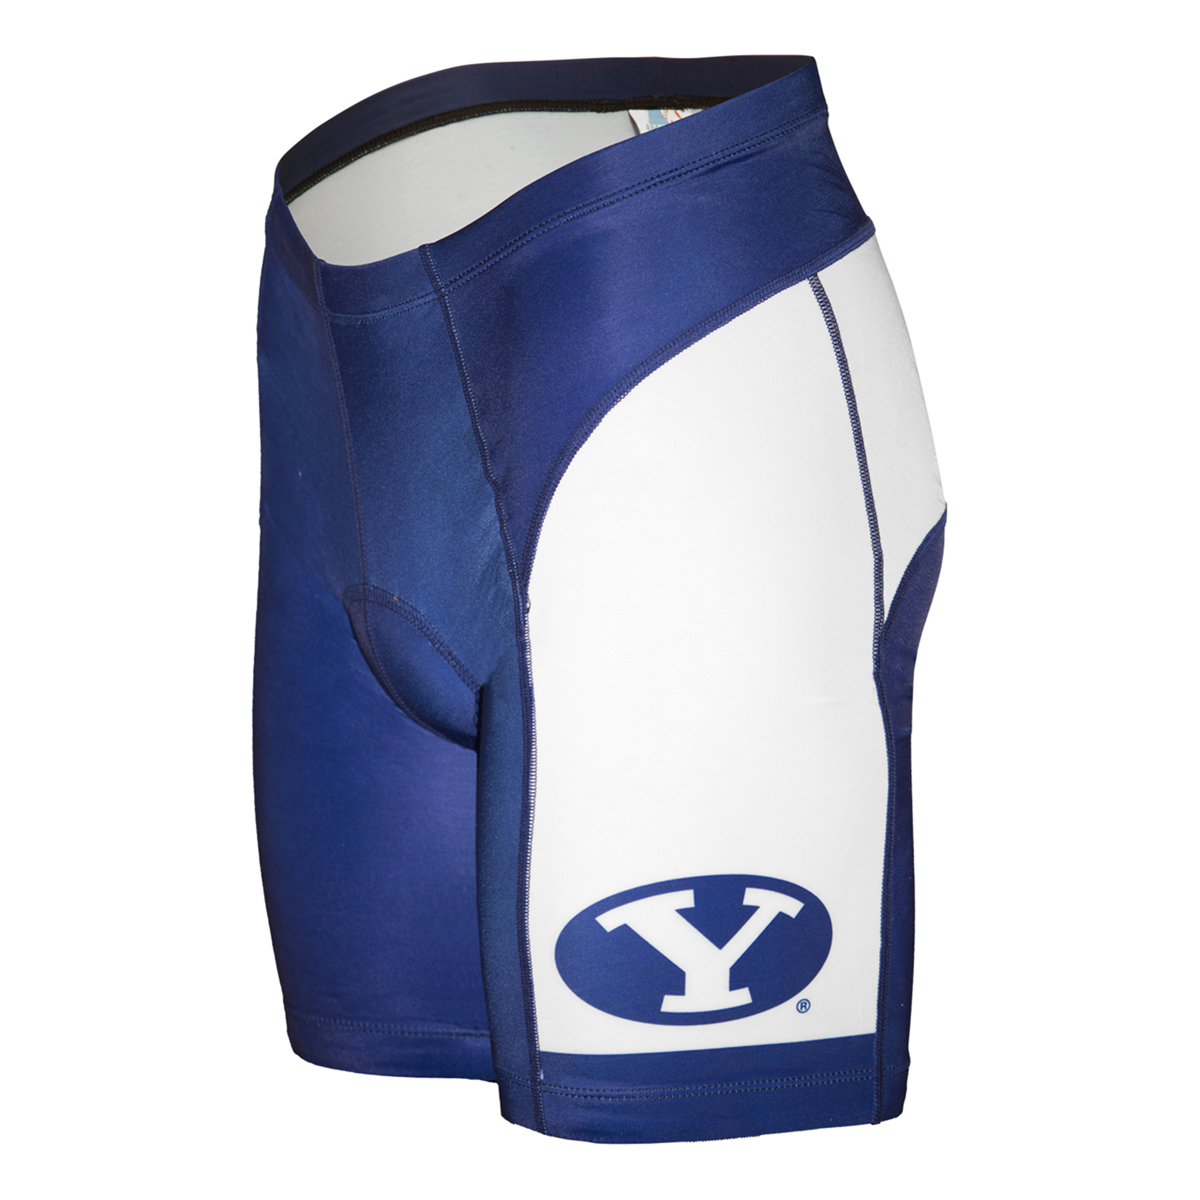 Brigham Young University Cycling Shorts